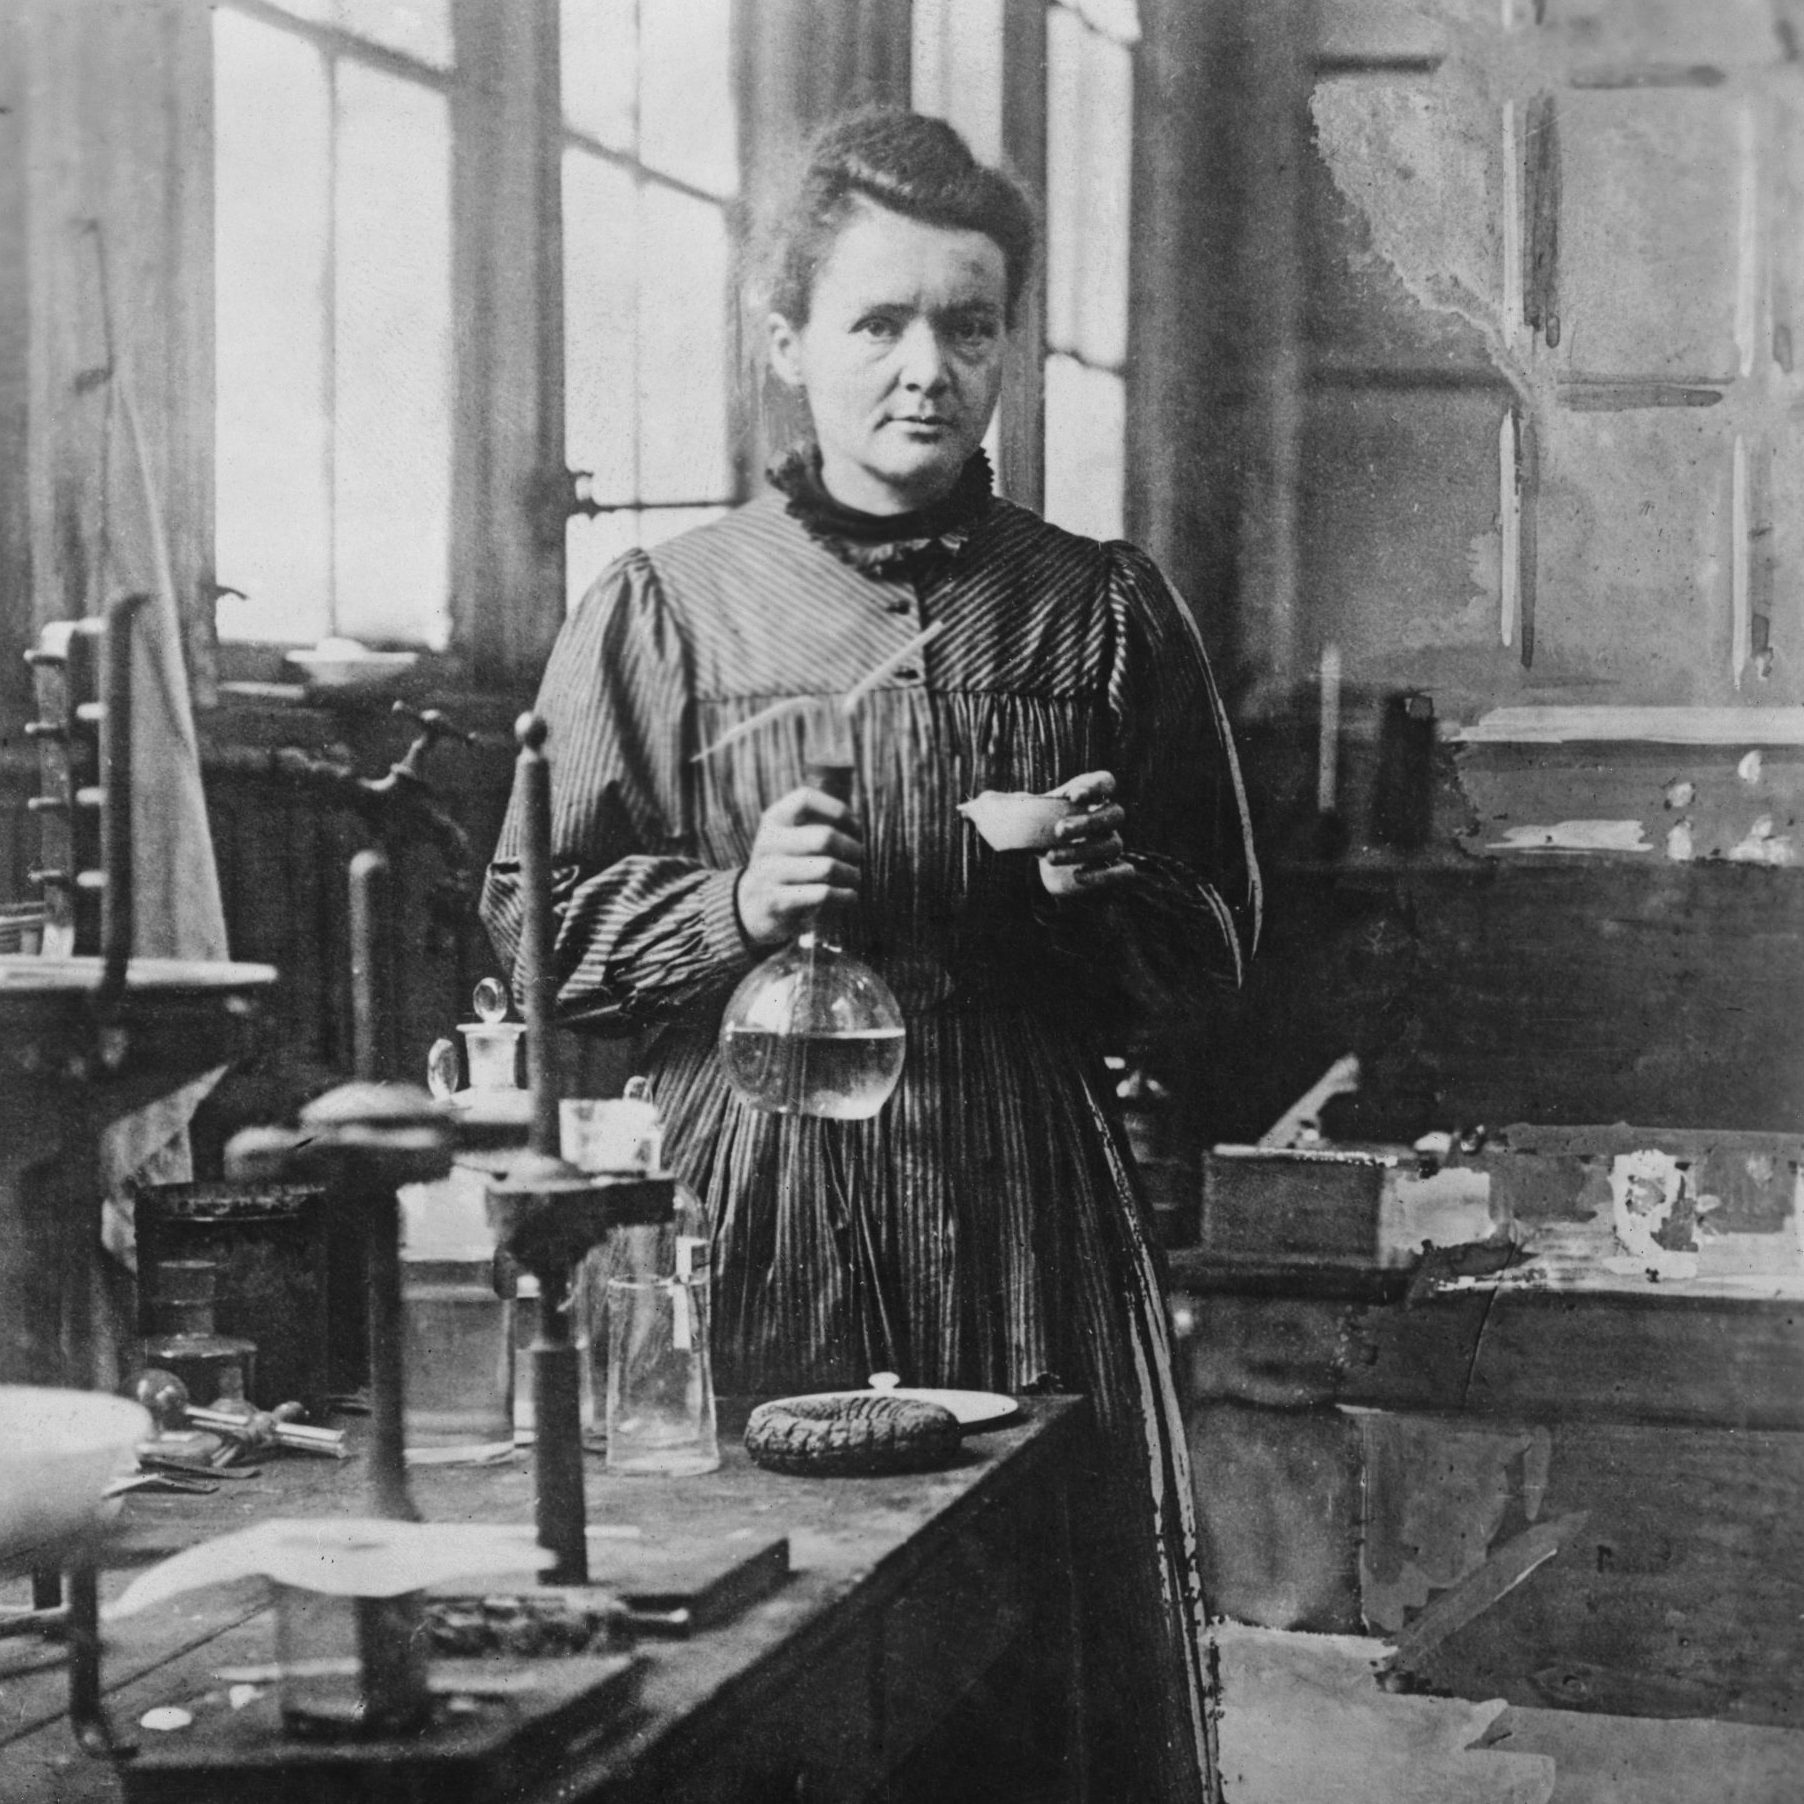 Madame Curie (1867-1934), noted physical chemist, poses in her Paris laboratory. Undated photograph.